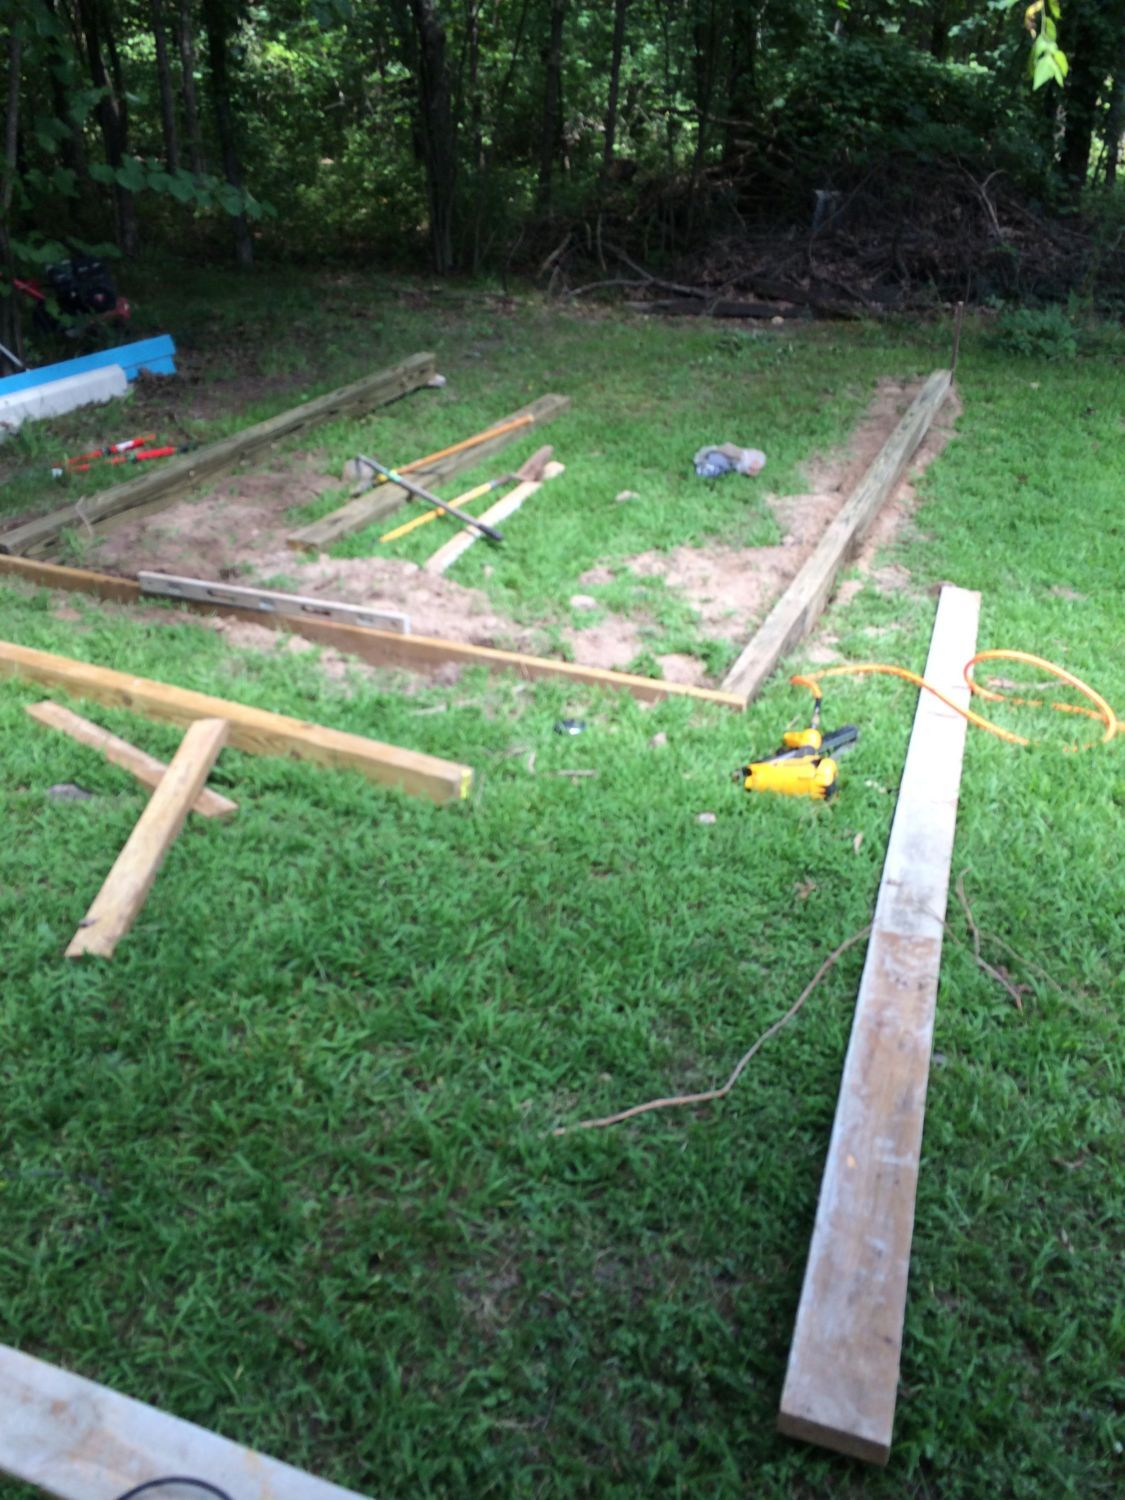 Here we have the 4'x6 pressure treated beams and PT 2x6's for the ends. I buried it in the ground to get it level as well as help keep critters from getting under it.